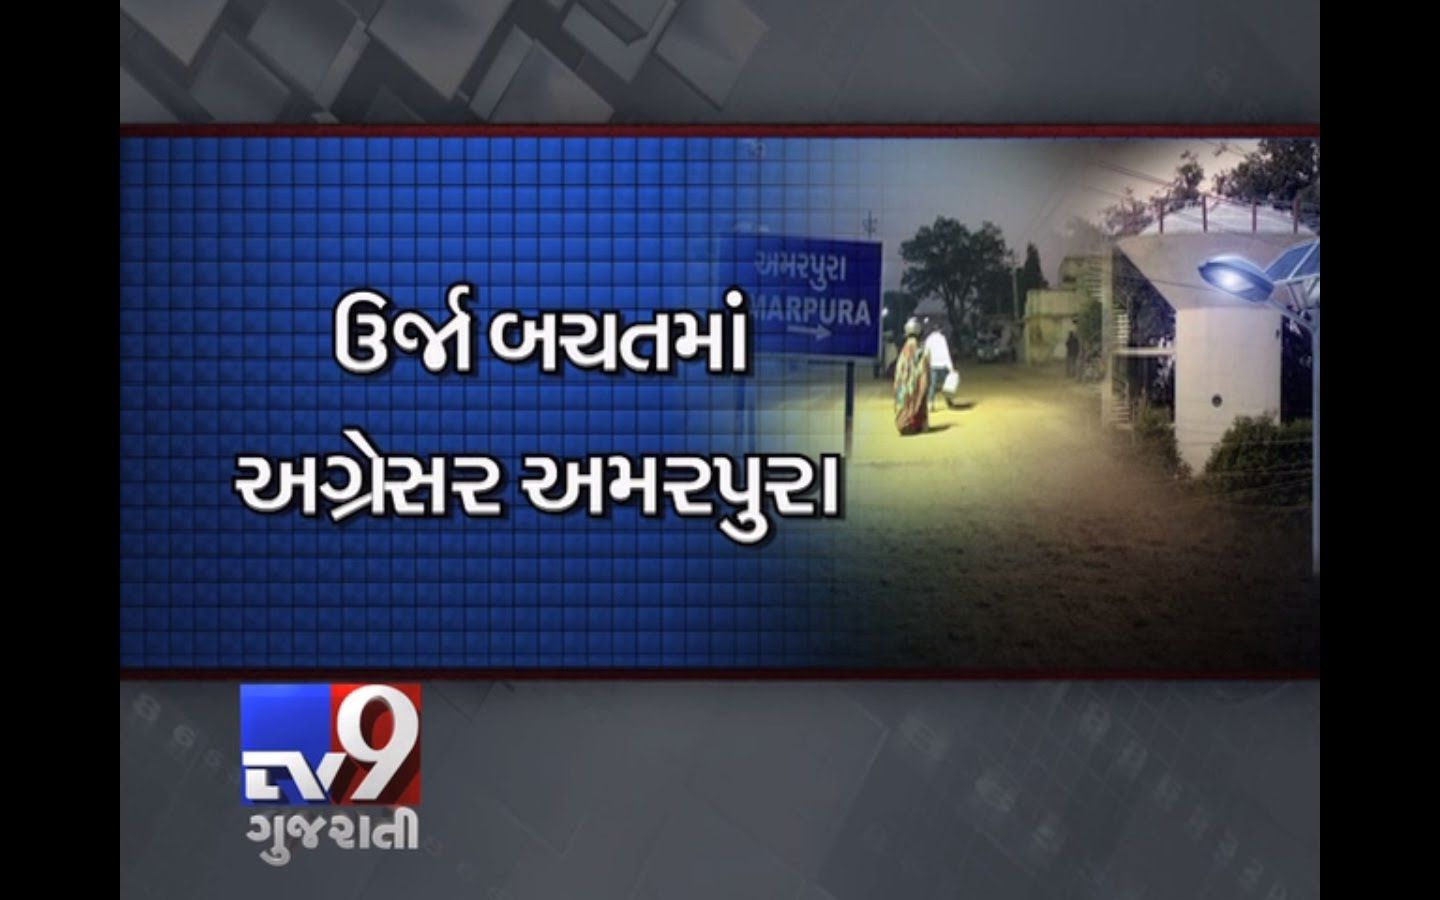 Gandhinagar : Amarpura Village of Mansa taluka, has become Gujarat's first energy-efficient LED streetlights developed village. The lights provide a better quality of light than traditional units and require 70% less energy to run   Subscribe to Tv9 Gujarati https://www.youtube.com/tv9gujarati Follow us on Dailymotion at http://www.dailymotion.com/GujaratTV9 Like us on Facebook at https://www.facebook.com/tv9gujarati